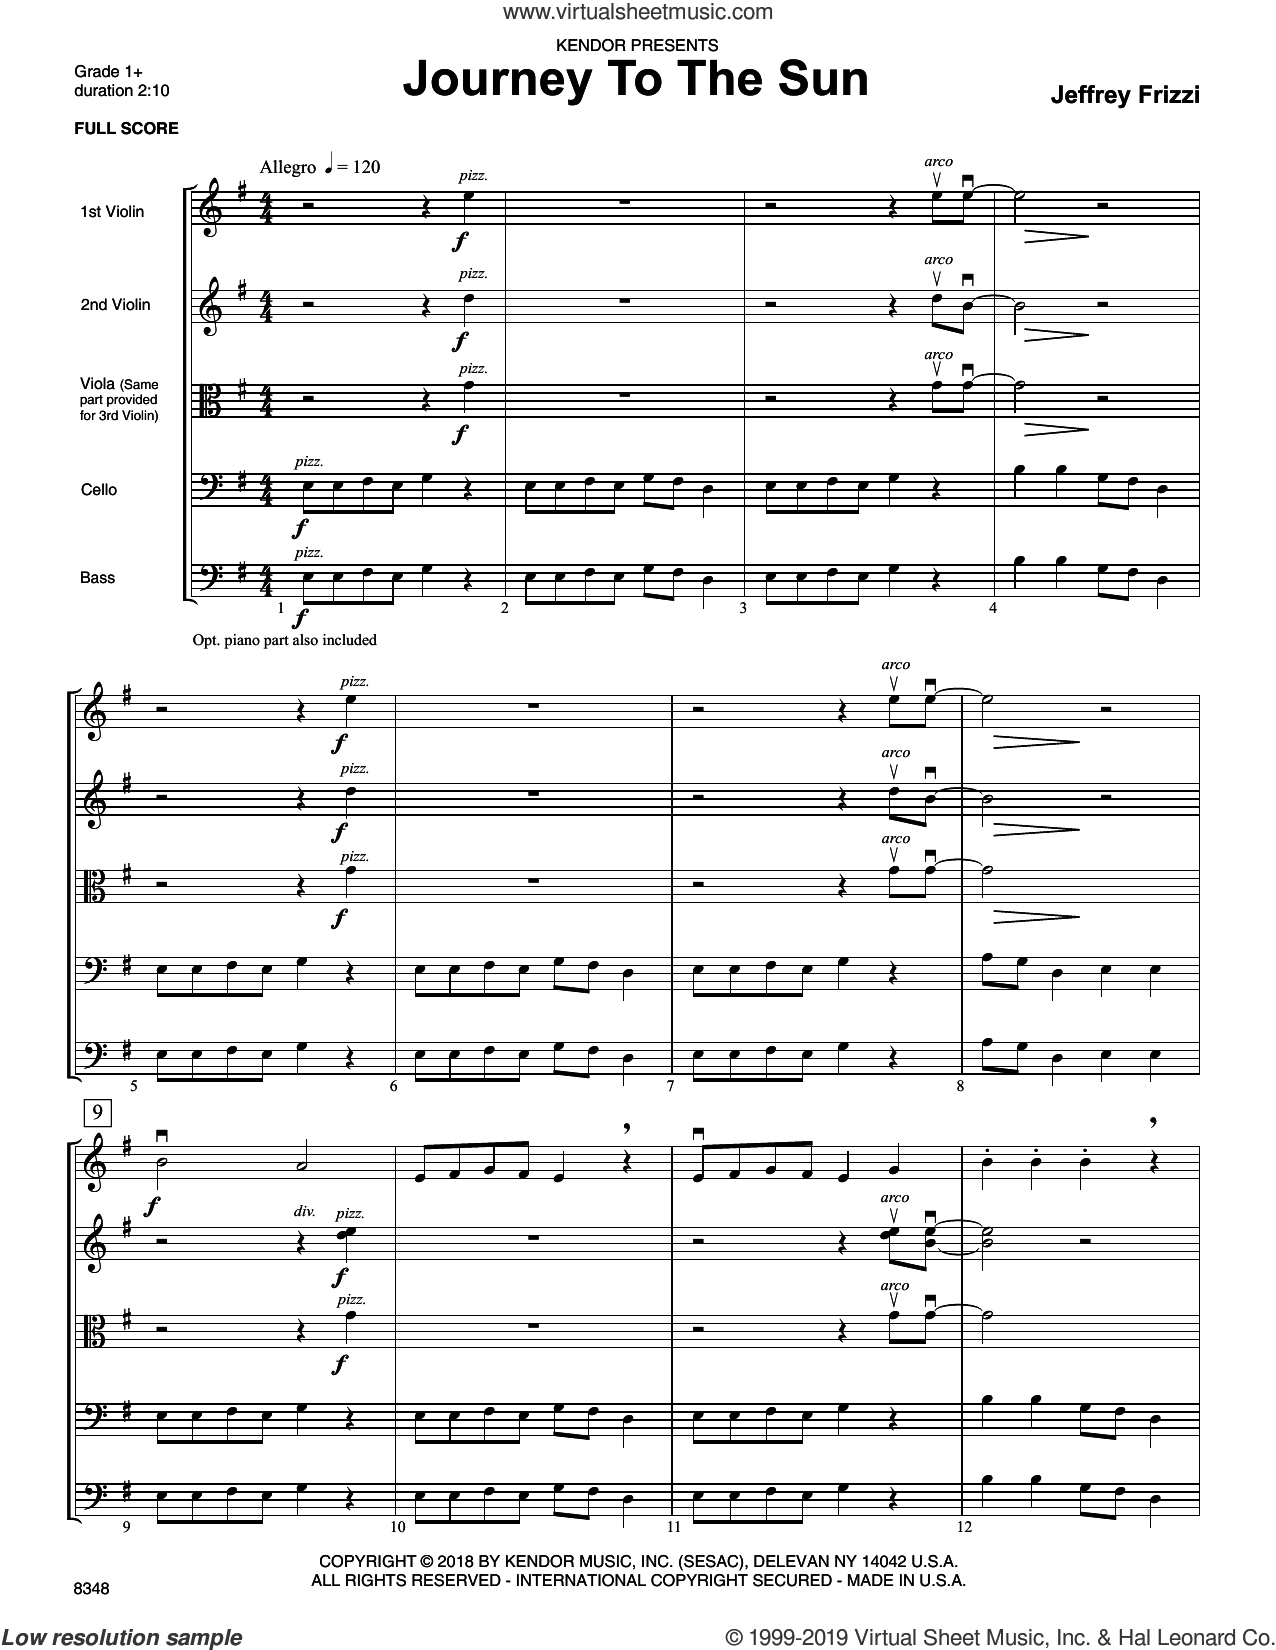 Journey To The Sun (COMPLETE) sheet music for orchestra by Jeff Frizzi, intermediate skill level